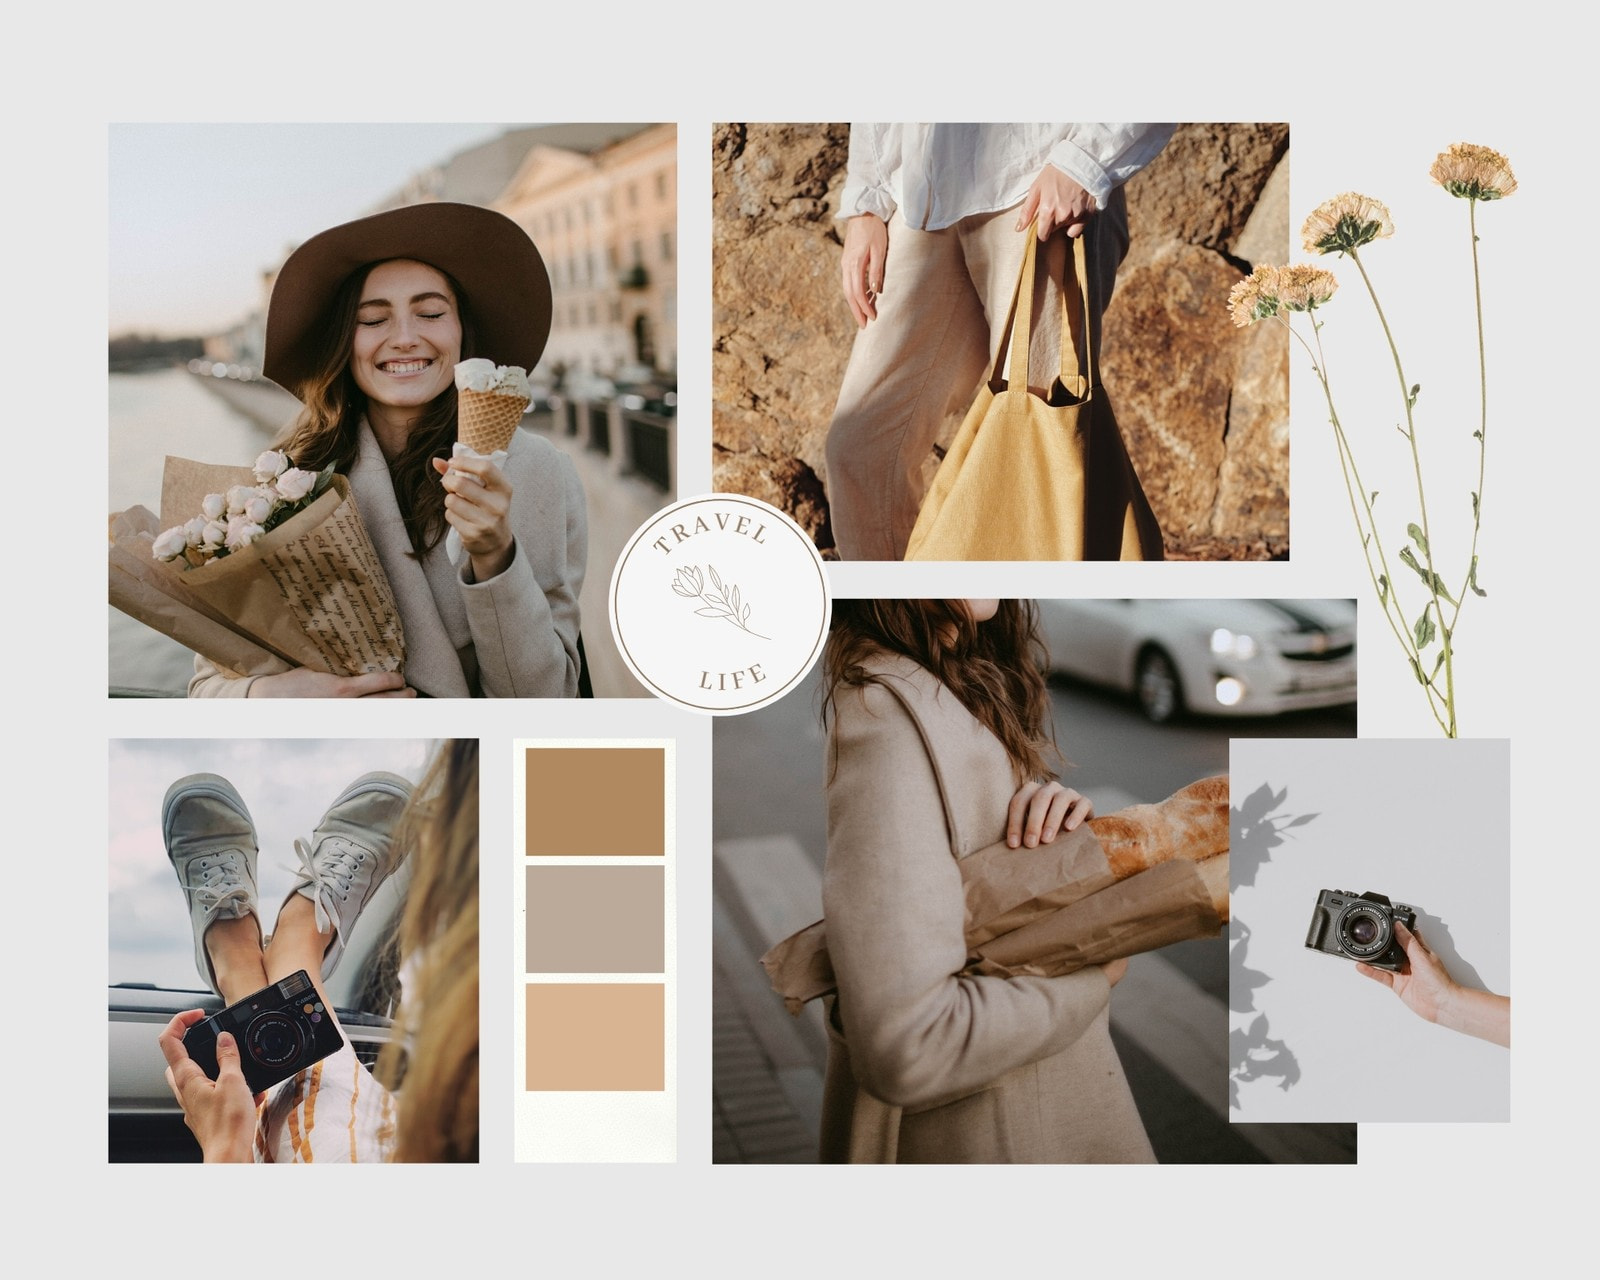 Brown Soft and Dainty Fashion Moodboard Photo Collage